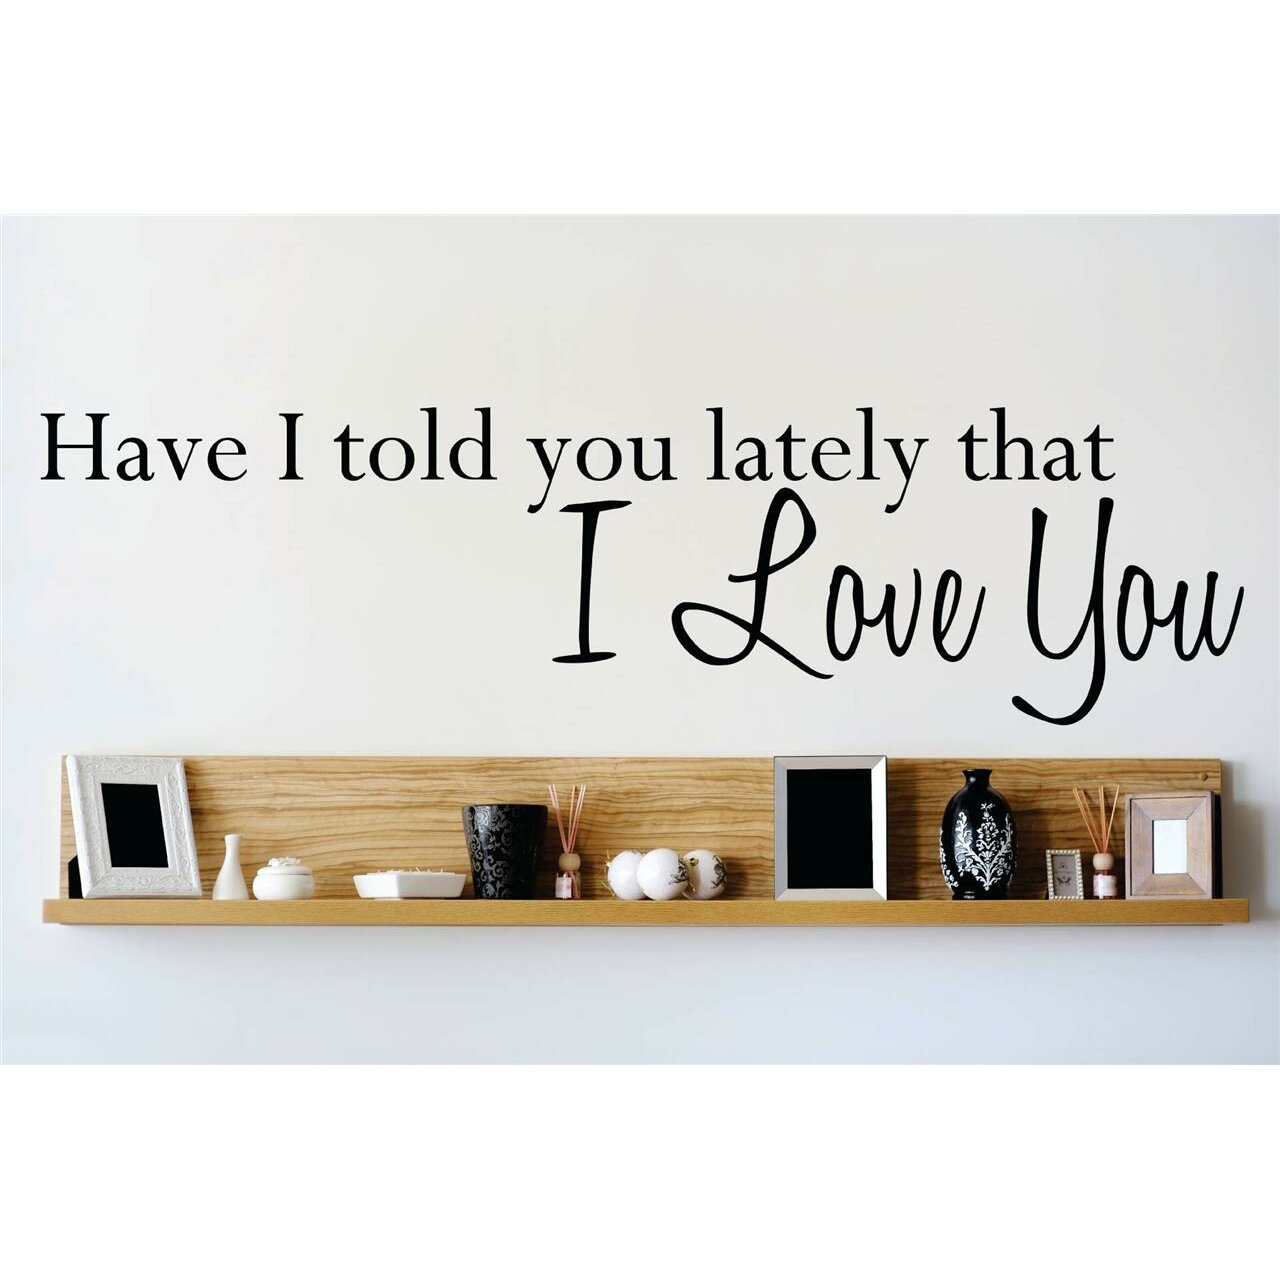 Have i told you lately that i love you wall decal by design with vinyl